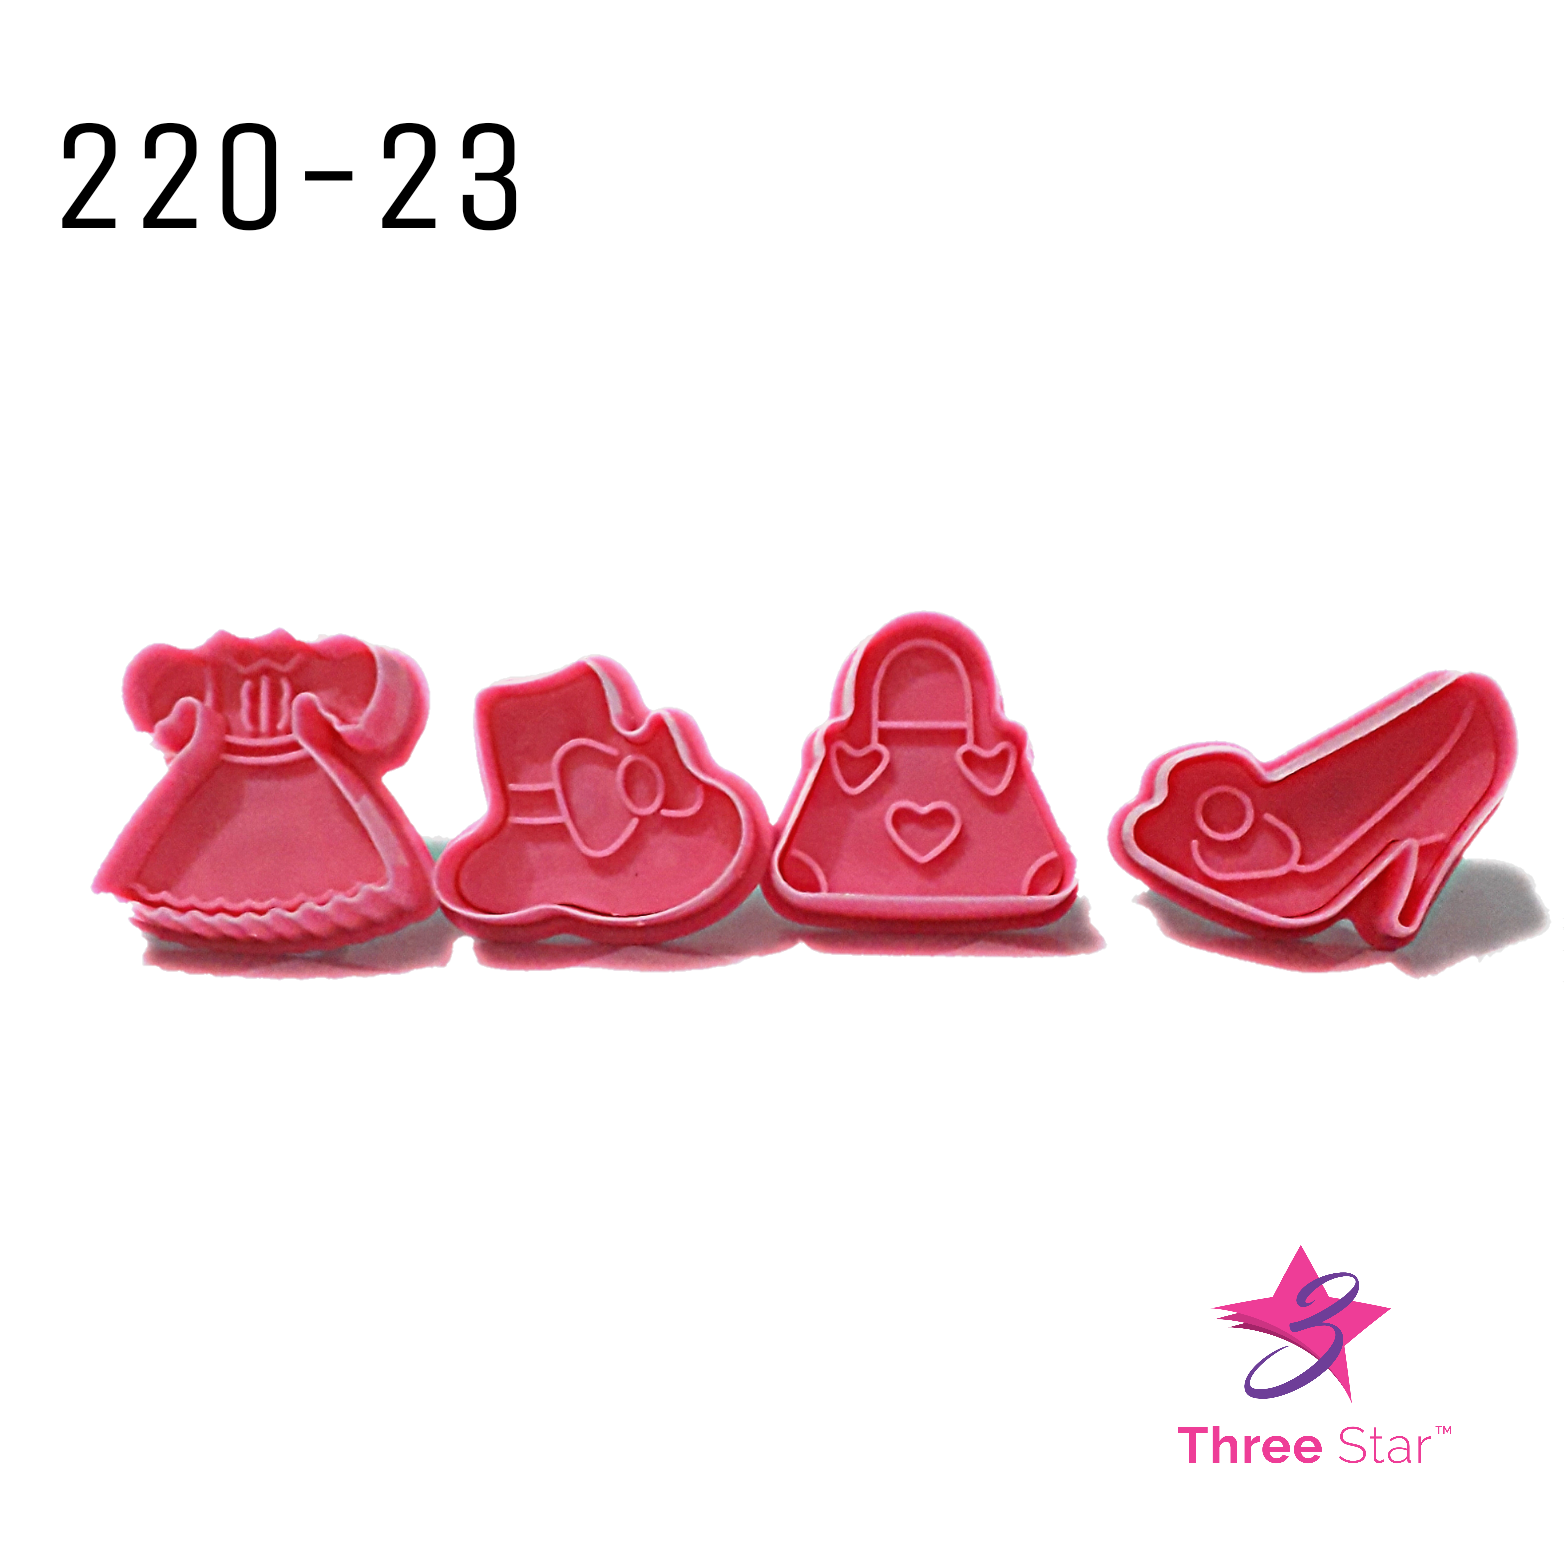 THE GIRL SERIES PLUNGER CUTTERS 4 PCS